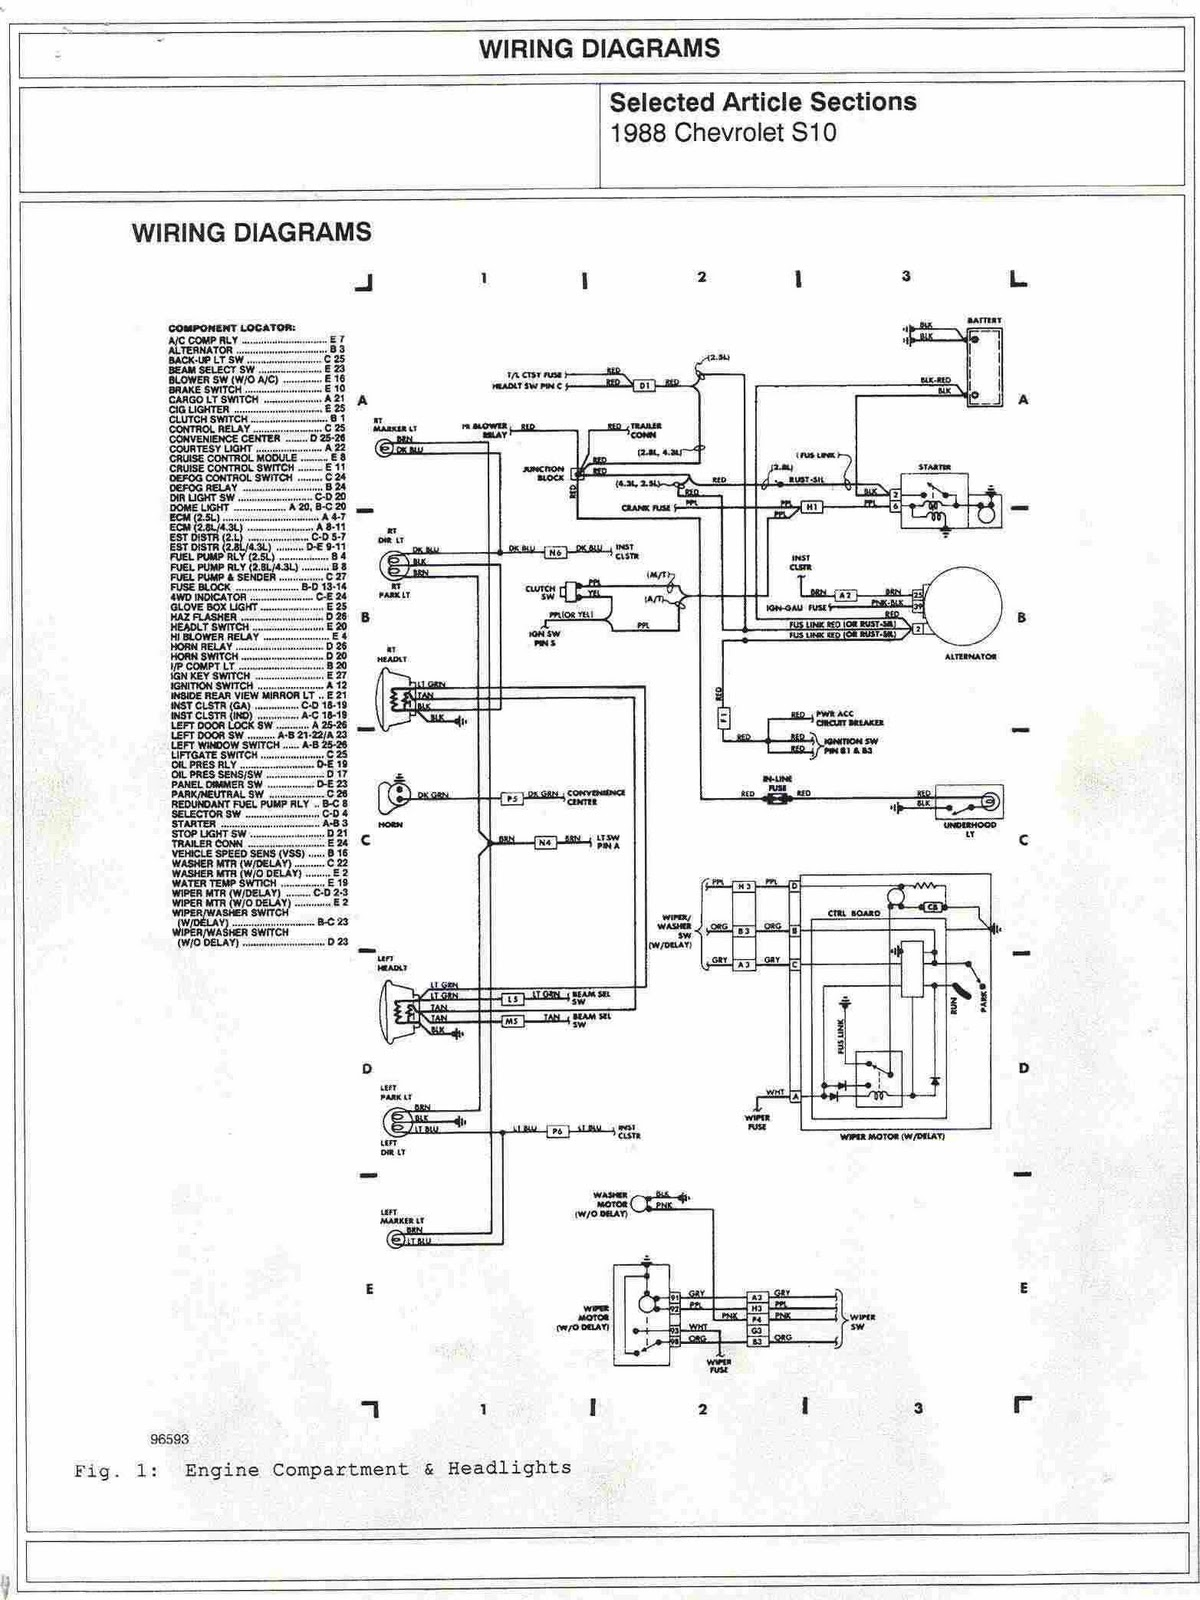 06 Gmc Turn Signal Wiring Diagram 33 Images 1990 Fuse Box U2022 Diagrams 1988 Chevrolet S10 Engine Compartment And Headlights